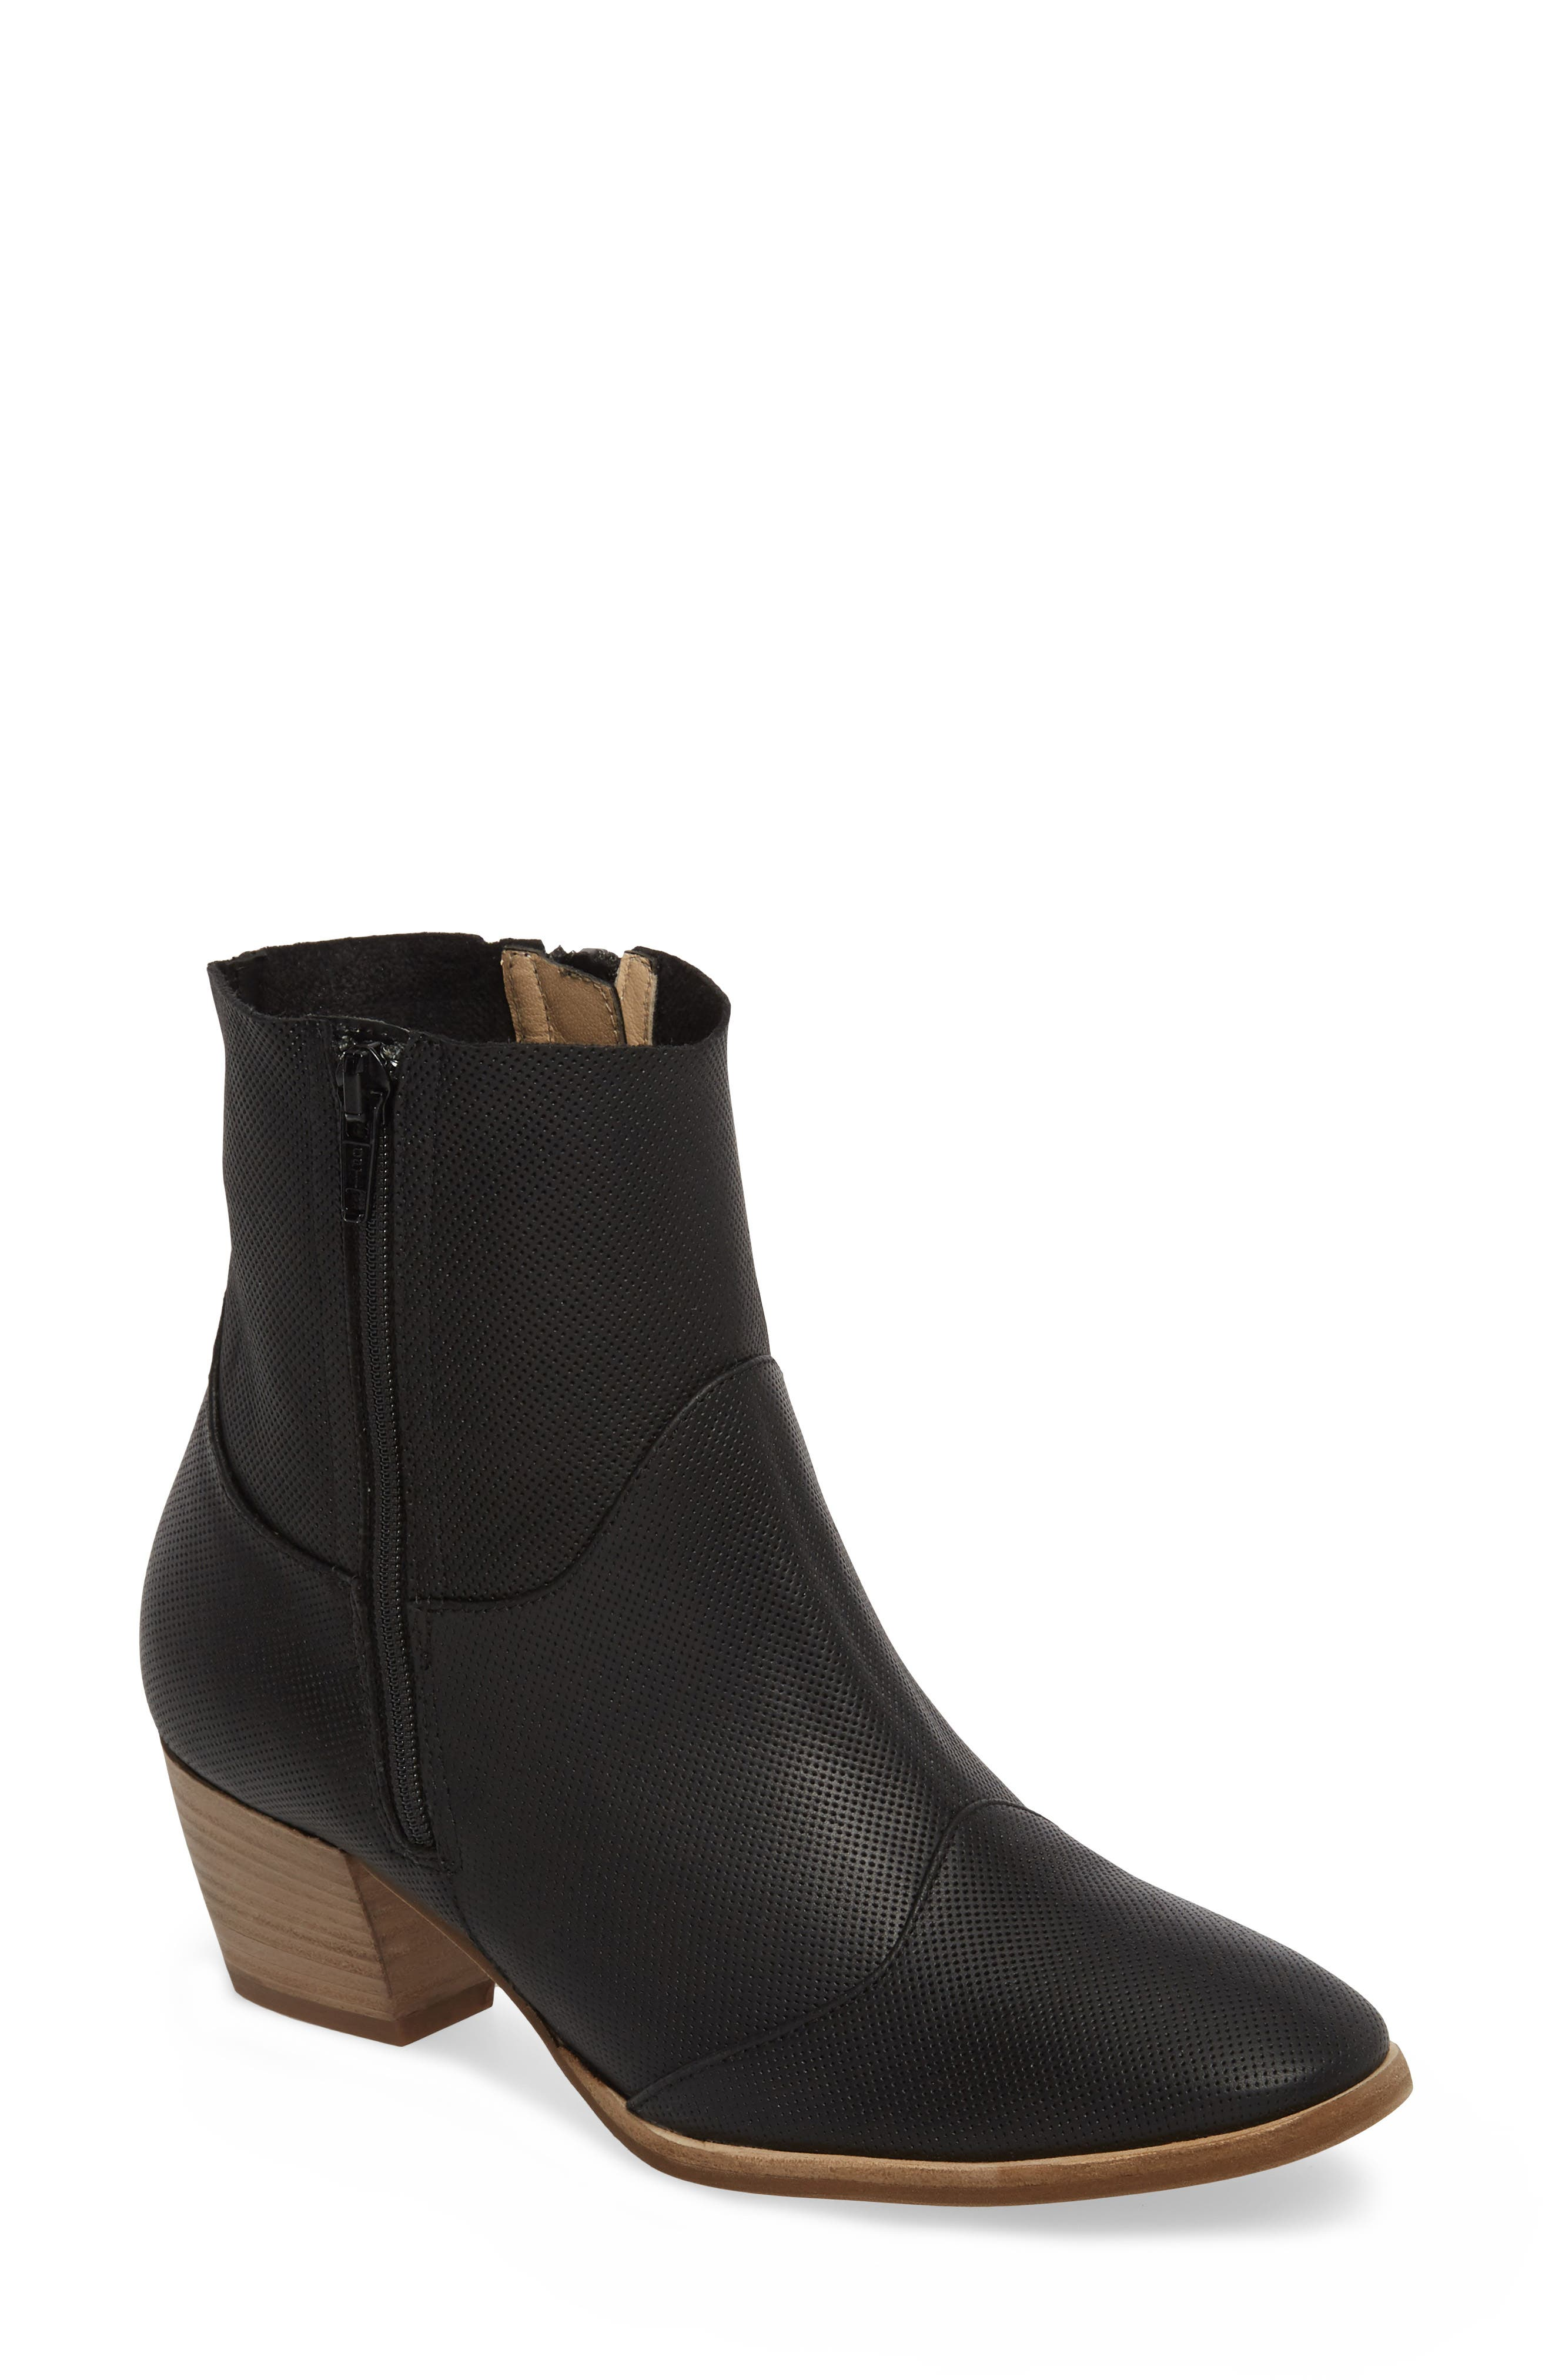 Robin Bootie,                             Main thumbnail 1, color,                             BLACK LEATHER